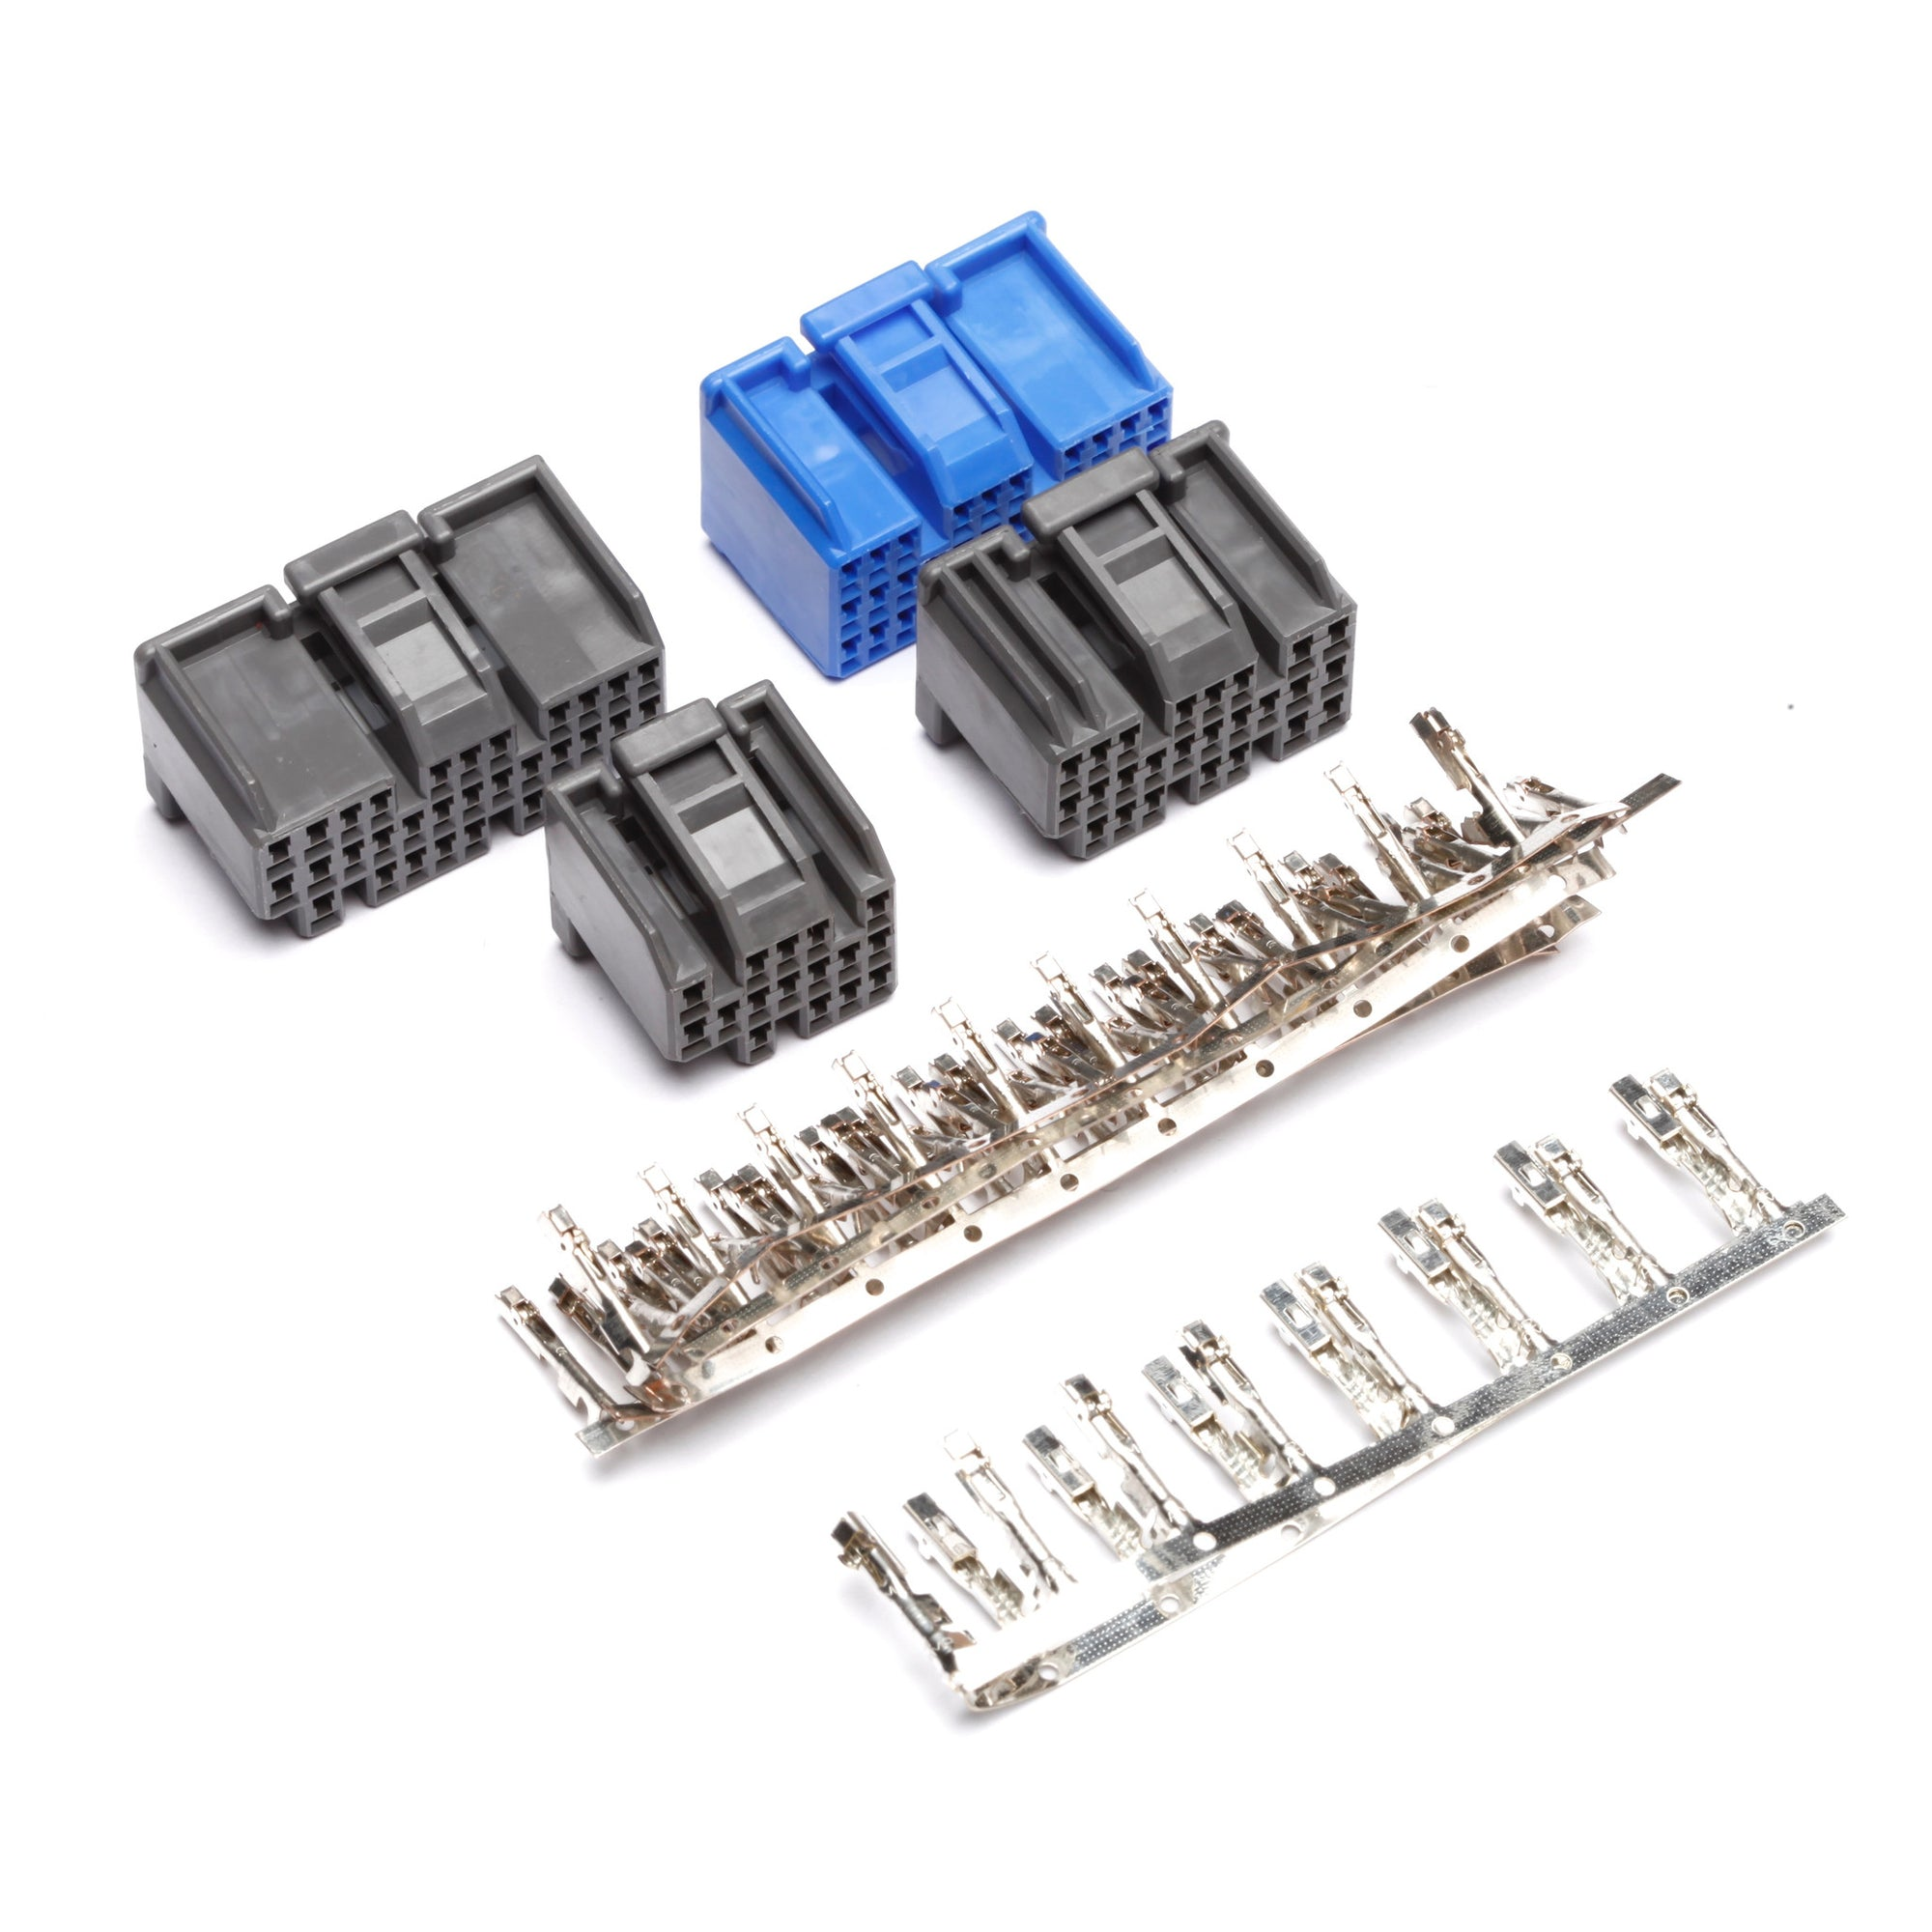 Connectors - K-Series ECU Connector Kit